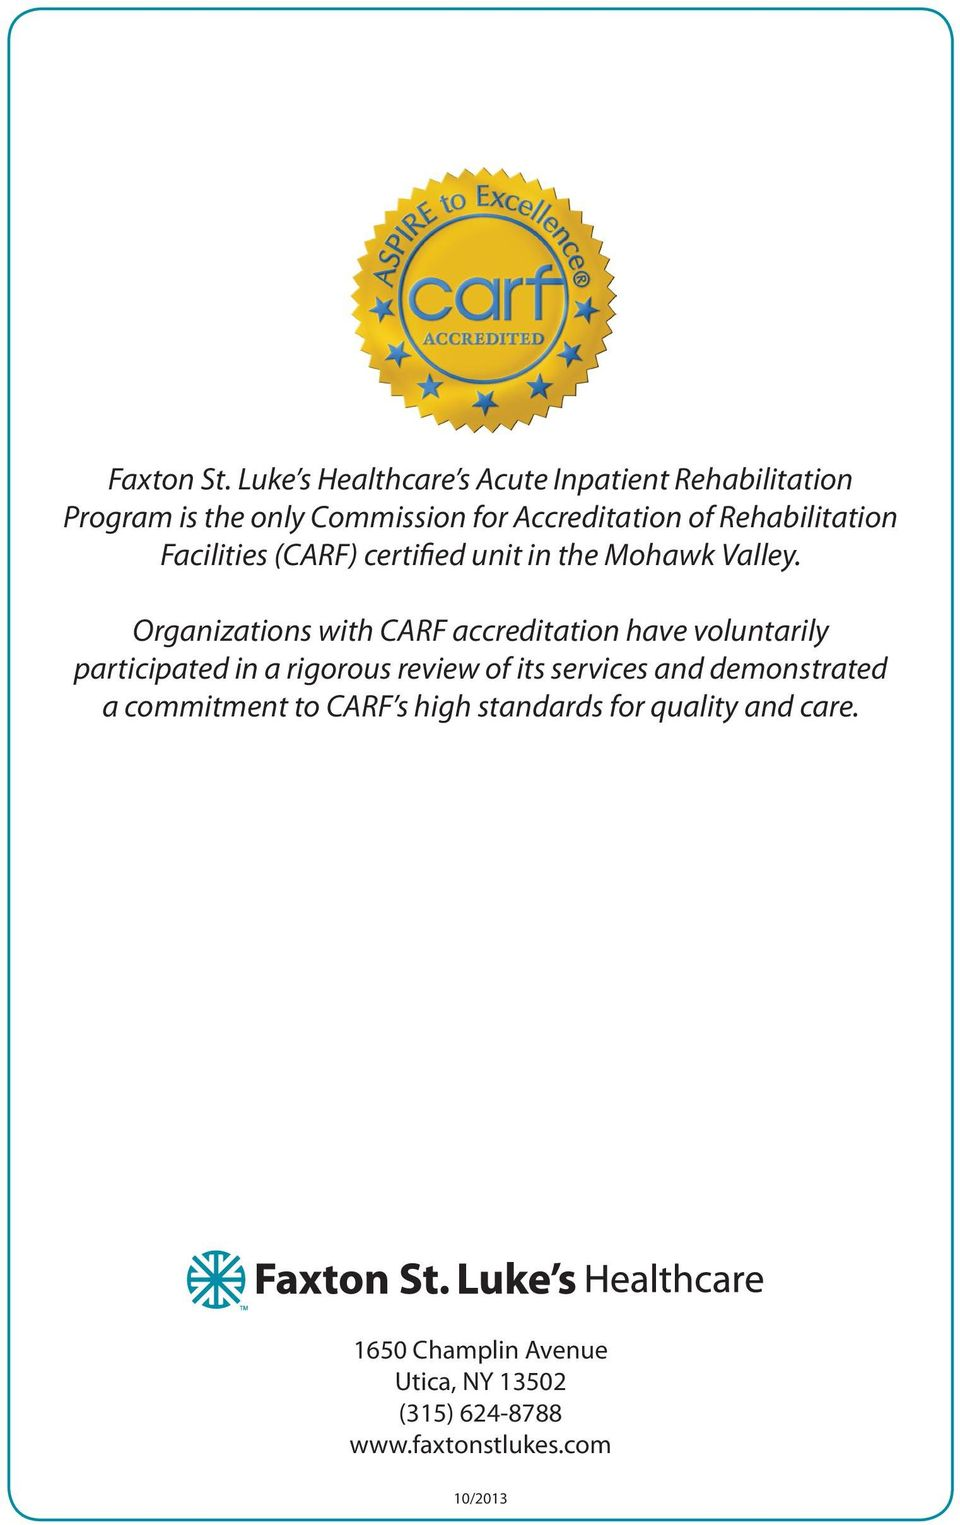 Rehabilitation Facilities (CARF) certified unit in the Mohawk Valley.